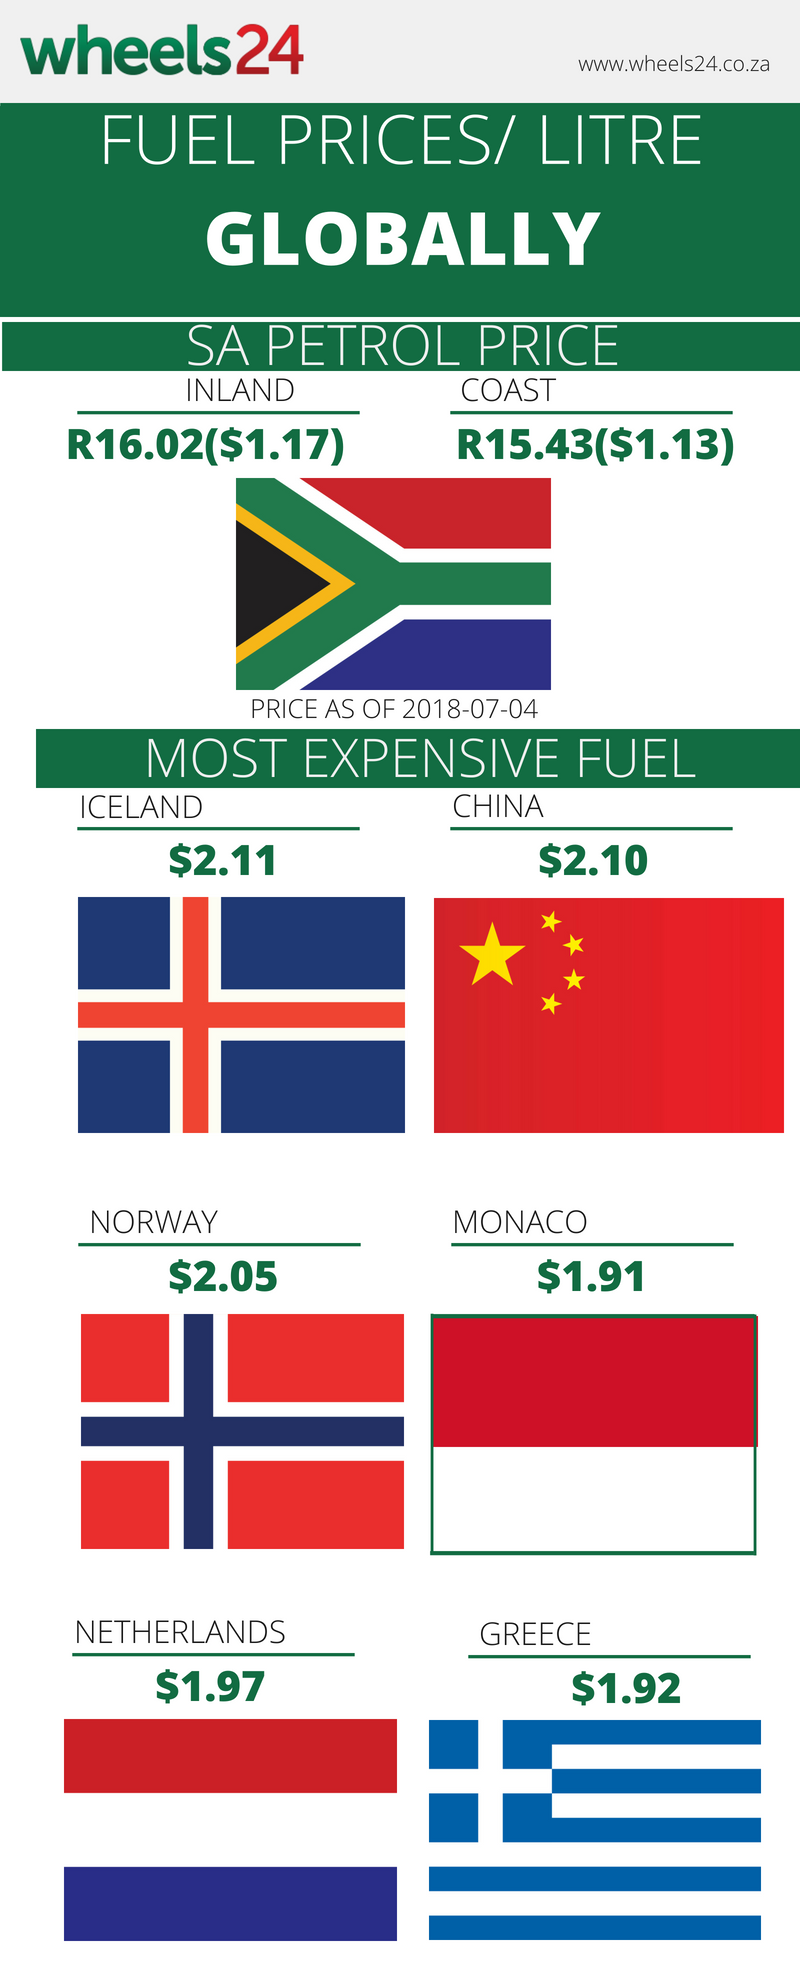 How does South Africa's petrol price compare to worldwide prices